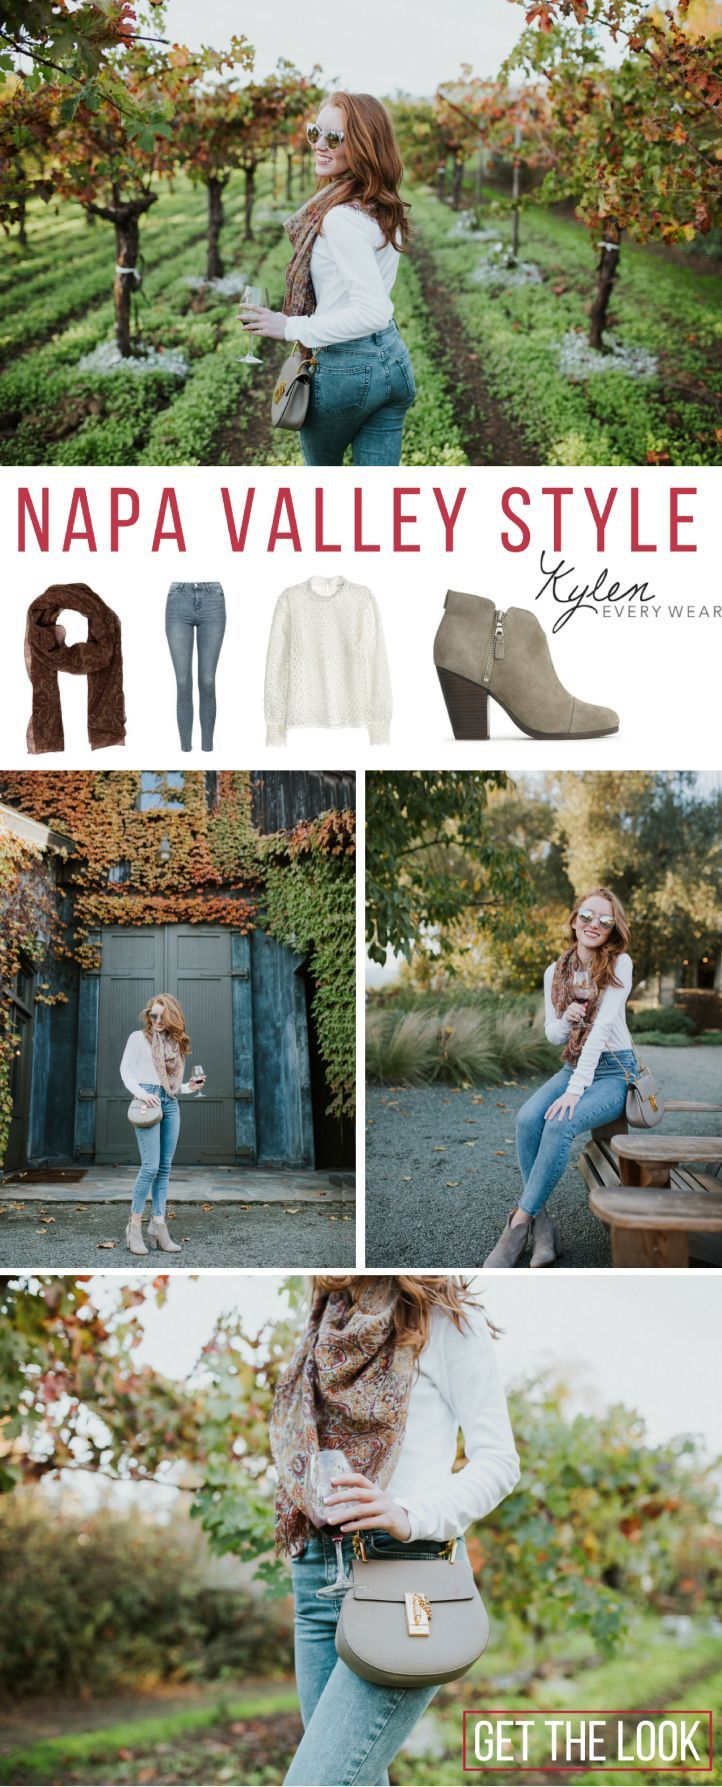 Napa Valley has a laid-back vibe, so for my wine tasting outfit, I went for a classic jeans and crisp white style | Kylen Every Wear